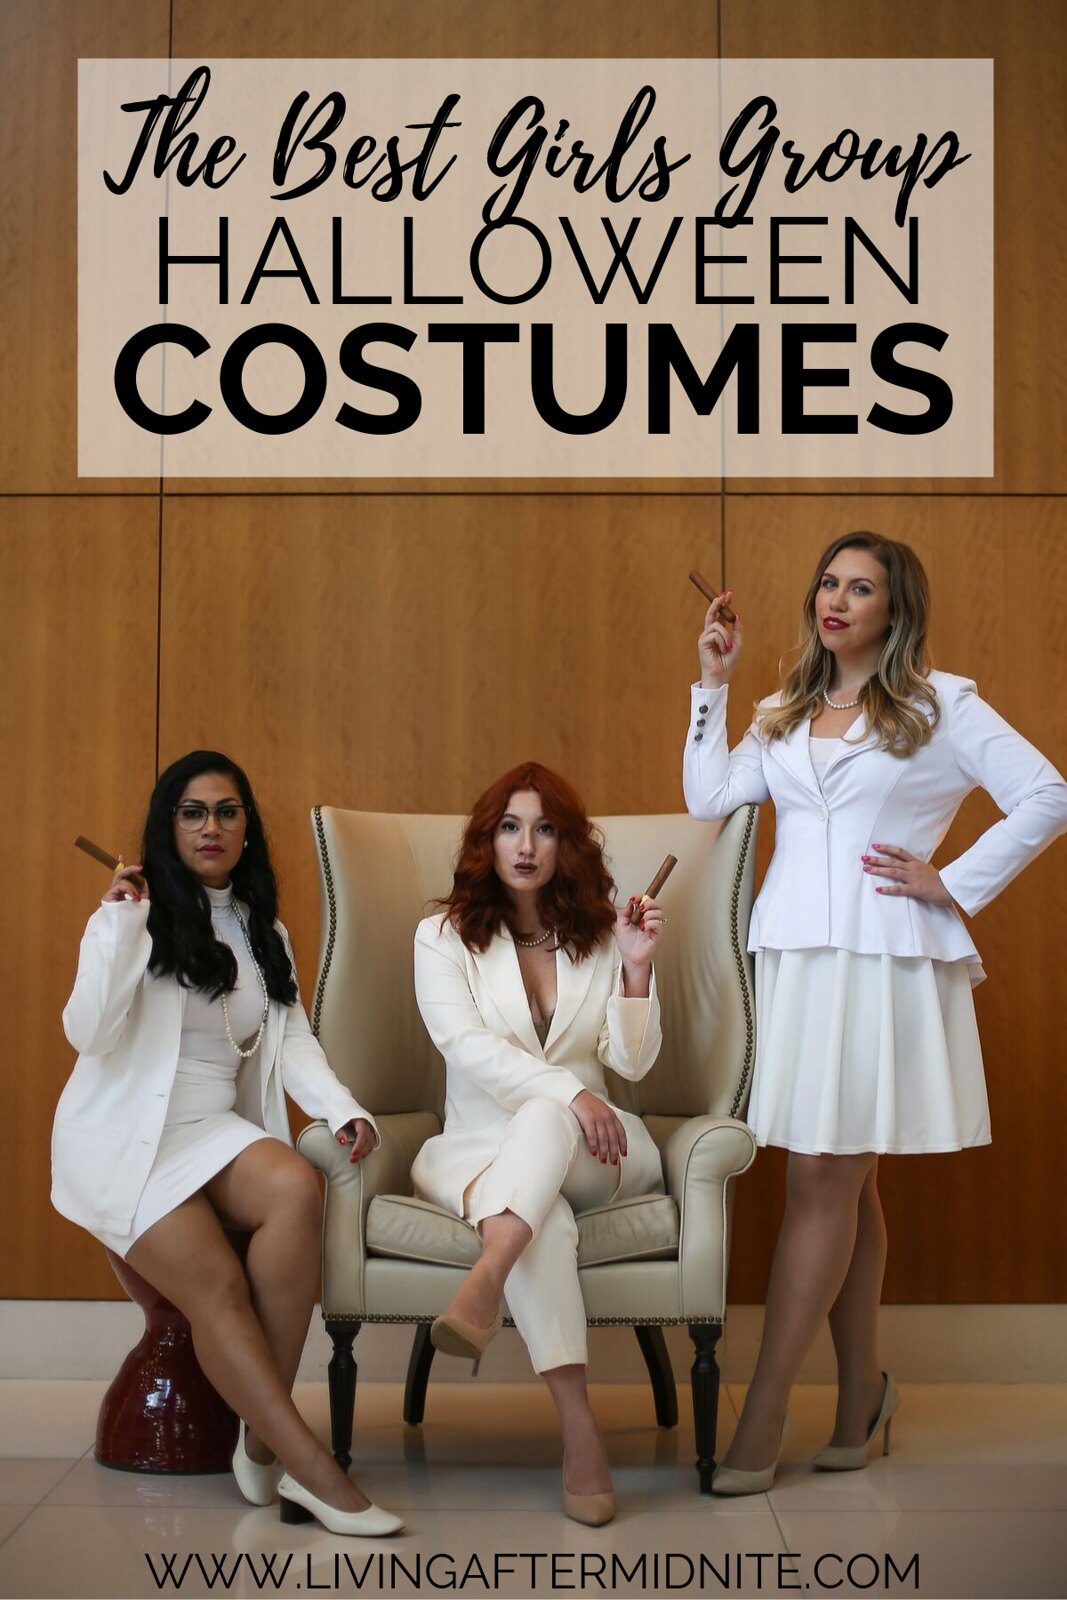 5 Group Halloween Costumes That Will Win You Best Dressed